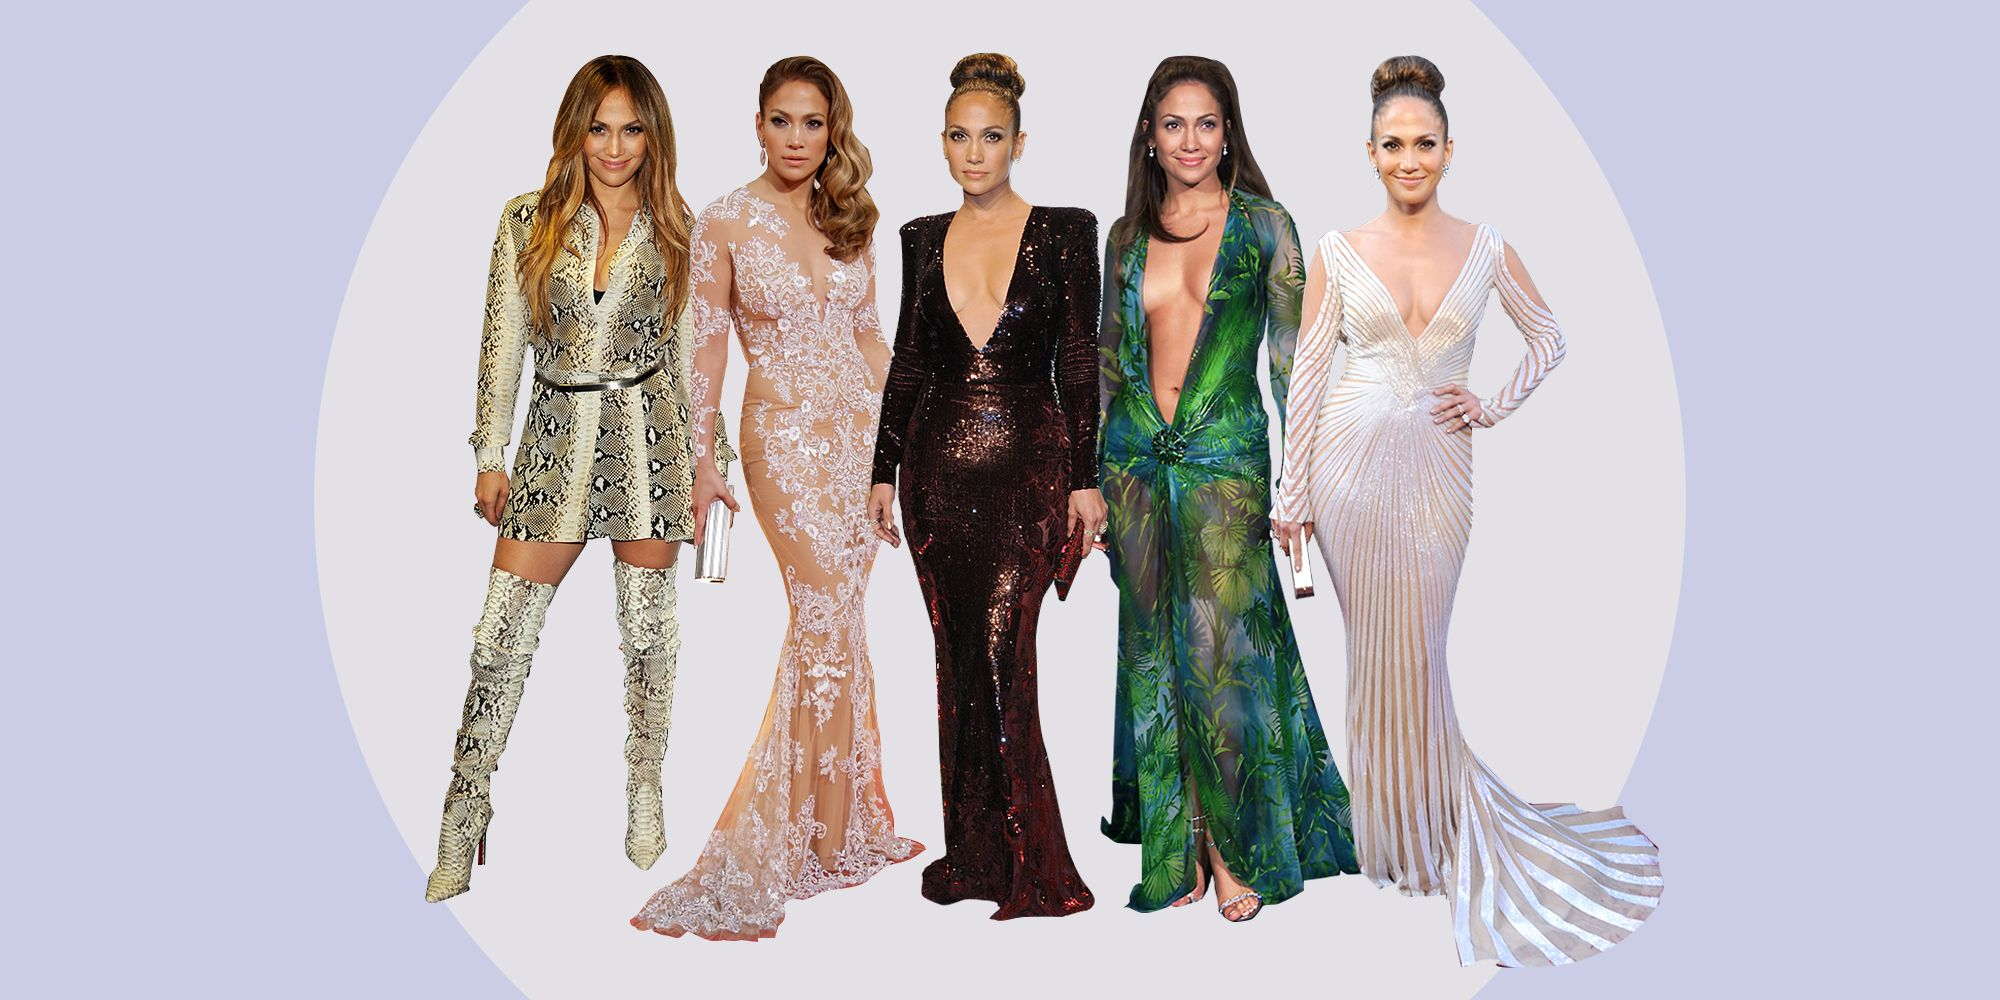 Jennifer Lopez Best Fashion Looks of All Time - JLo Clothing Photos